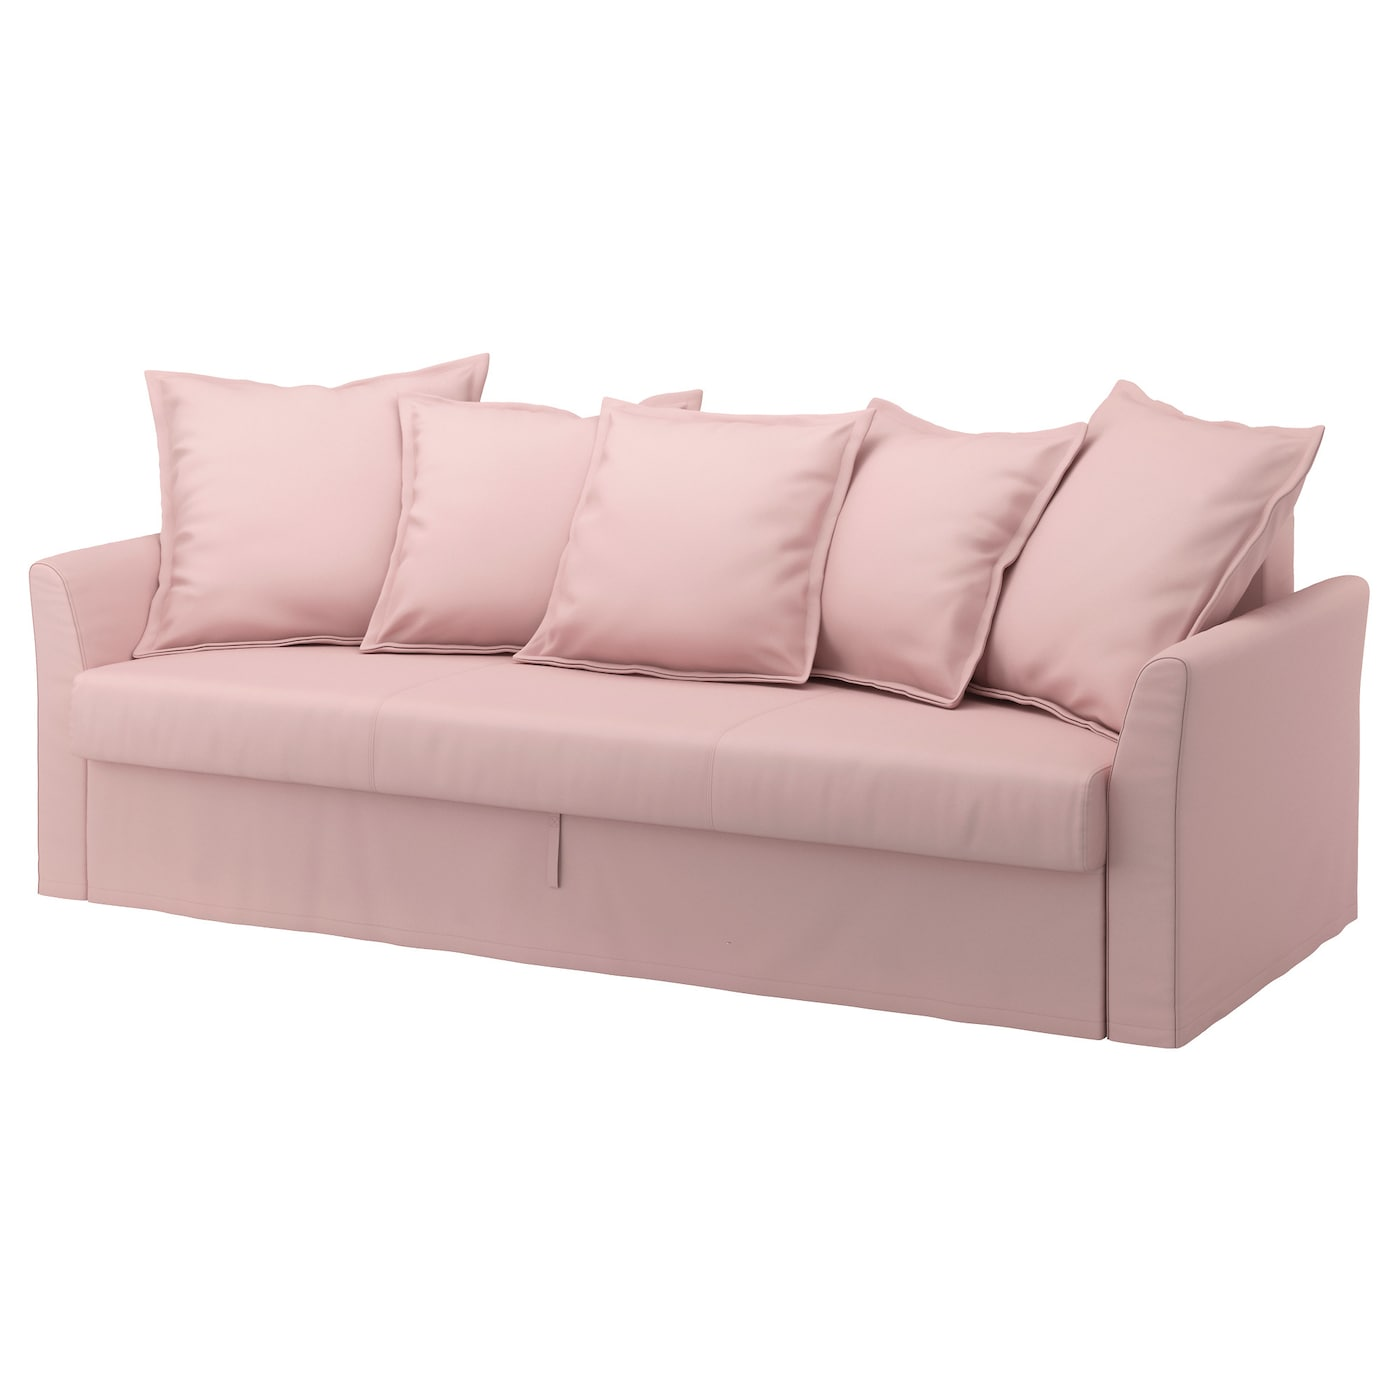 Holmsund three seat sofa bed ransta light pink ikea - Sofa cama 2 plazas precios ...